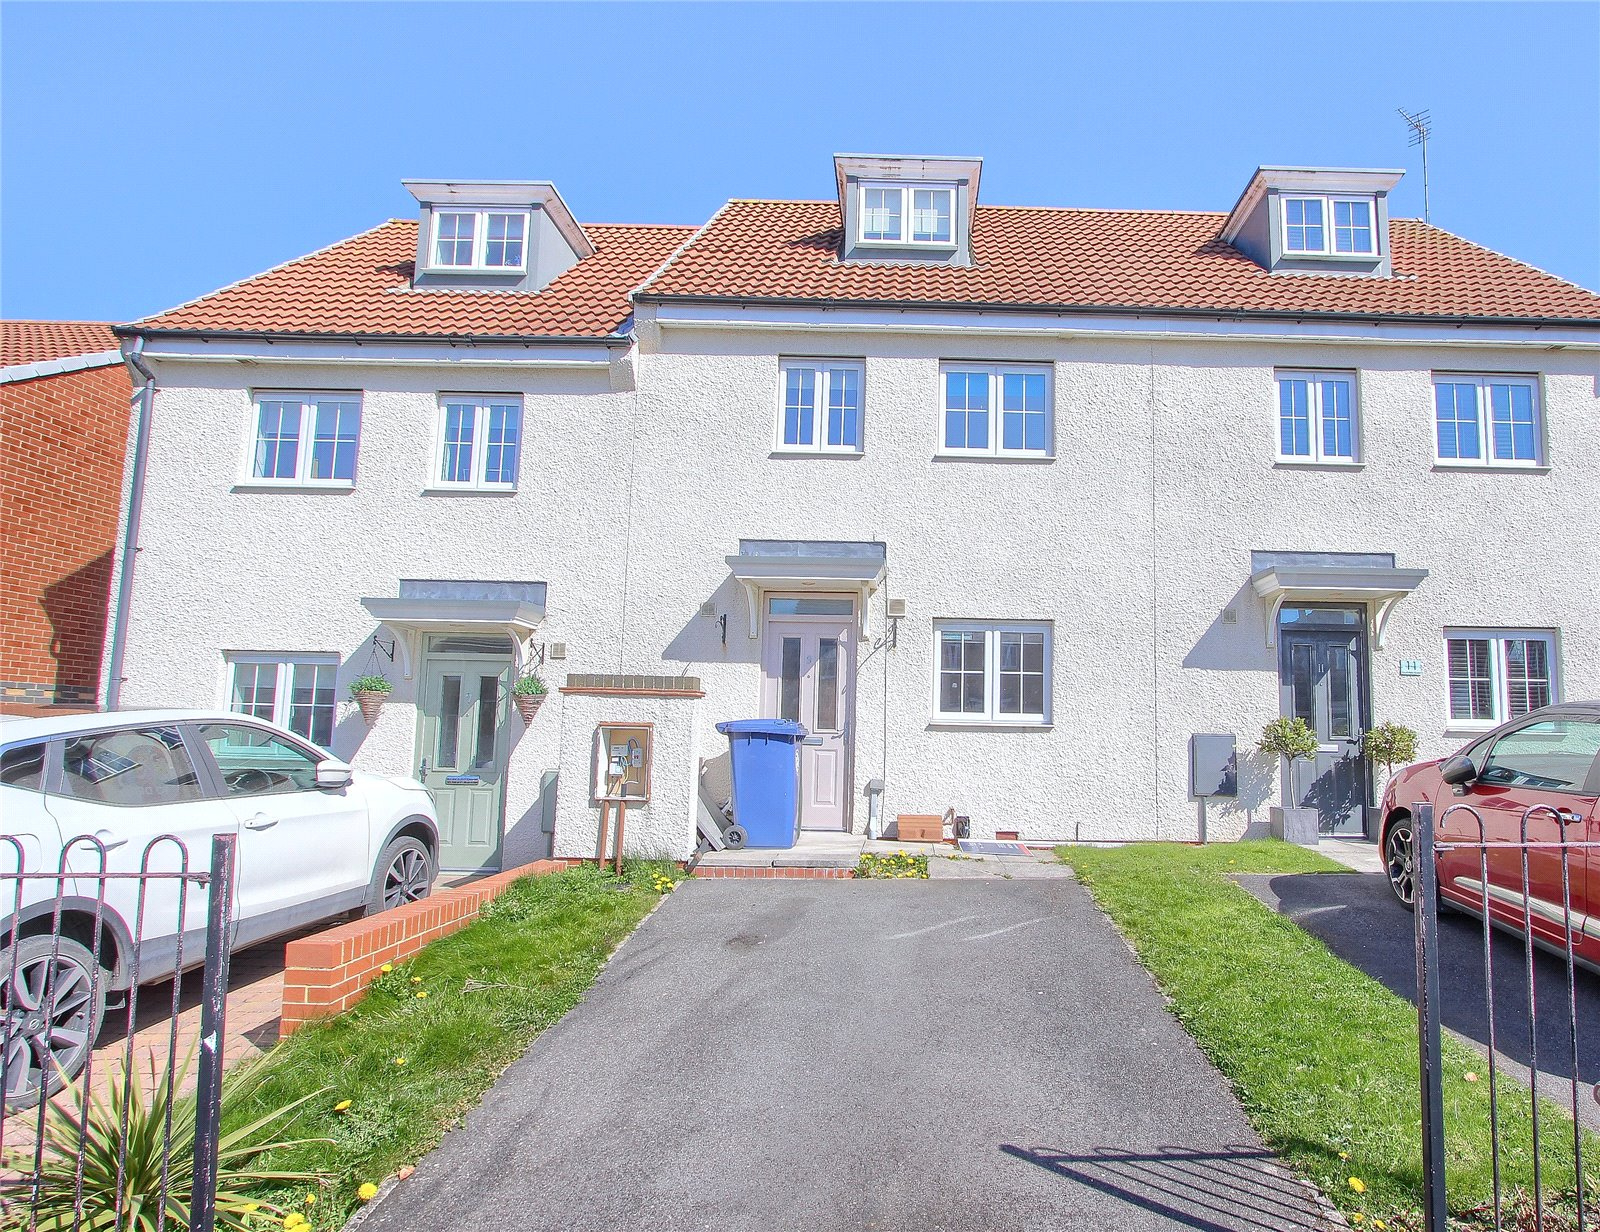 3 bed house for sale in Southfield Road, Marske-by-the-Sea 1